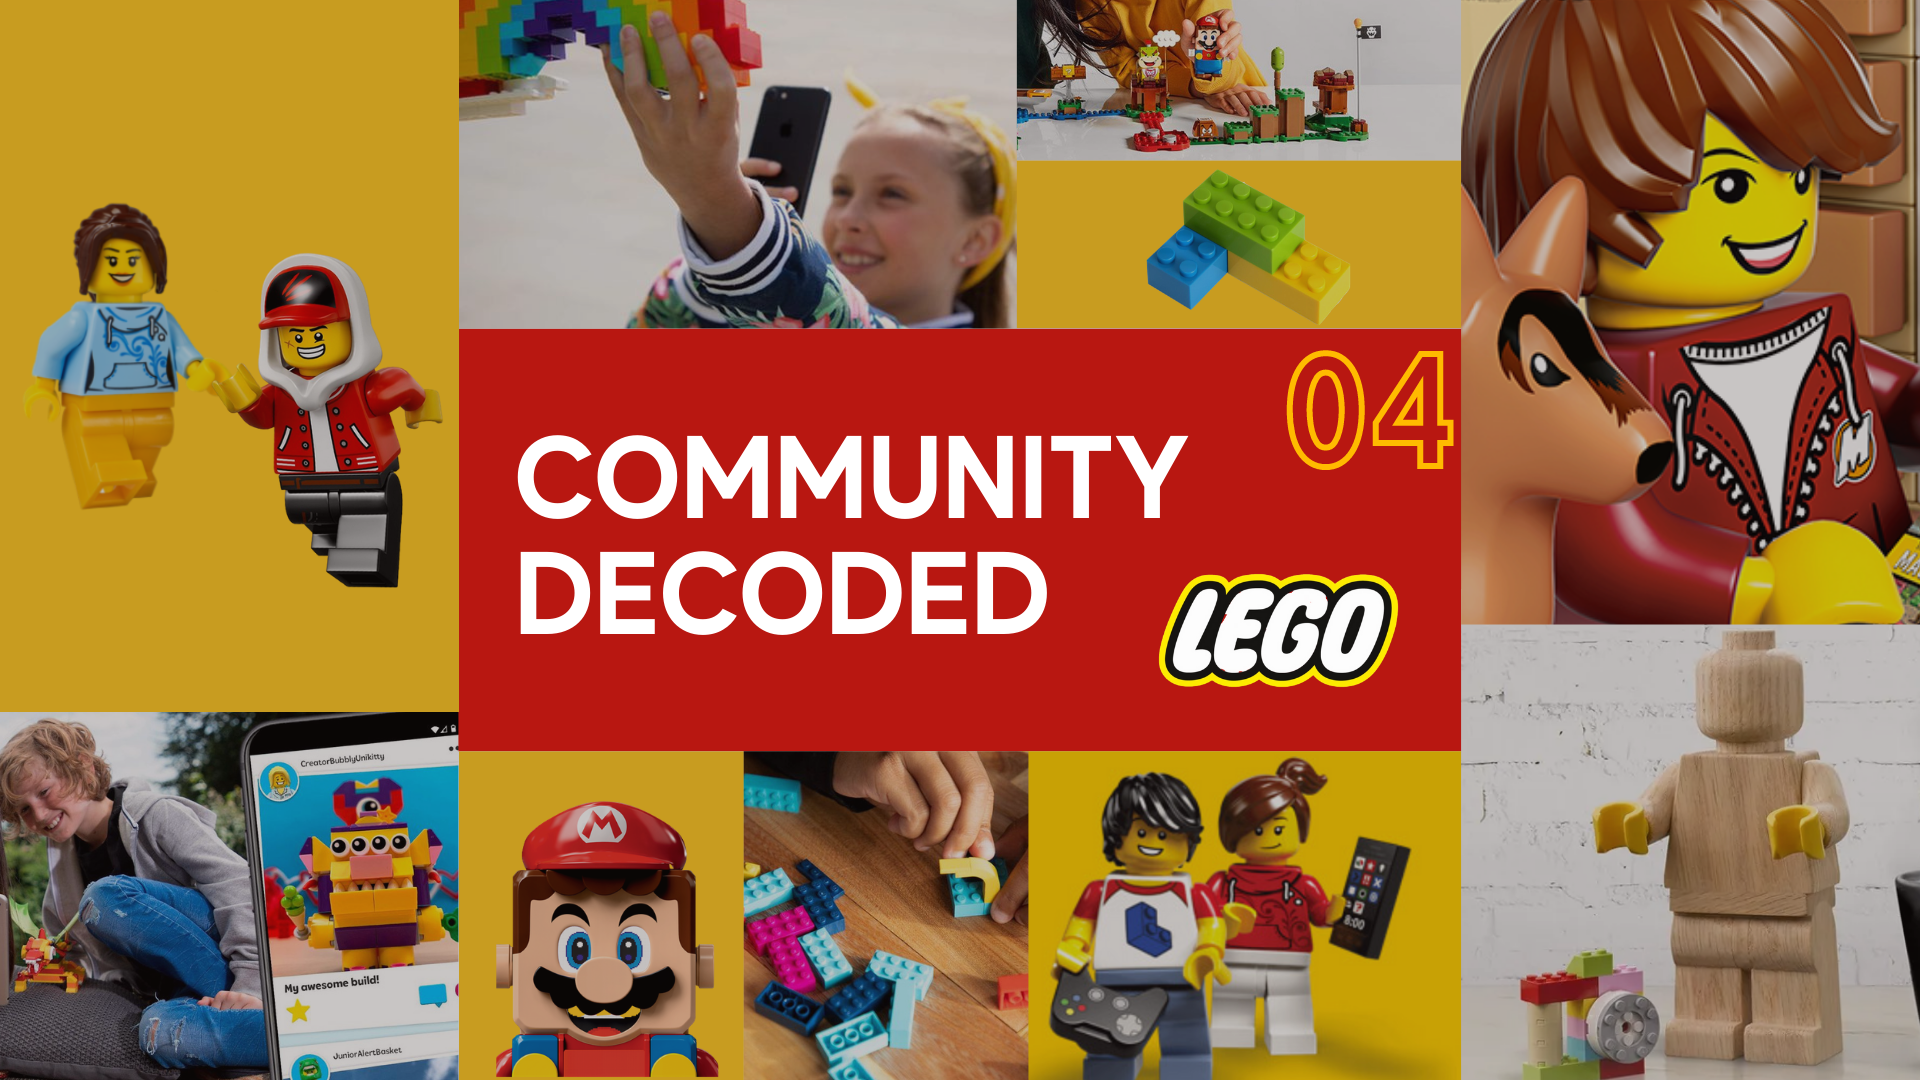 Analyzing the brand community strategy of Lego and how they turn customers into loyal advocates